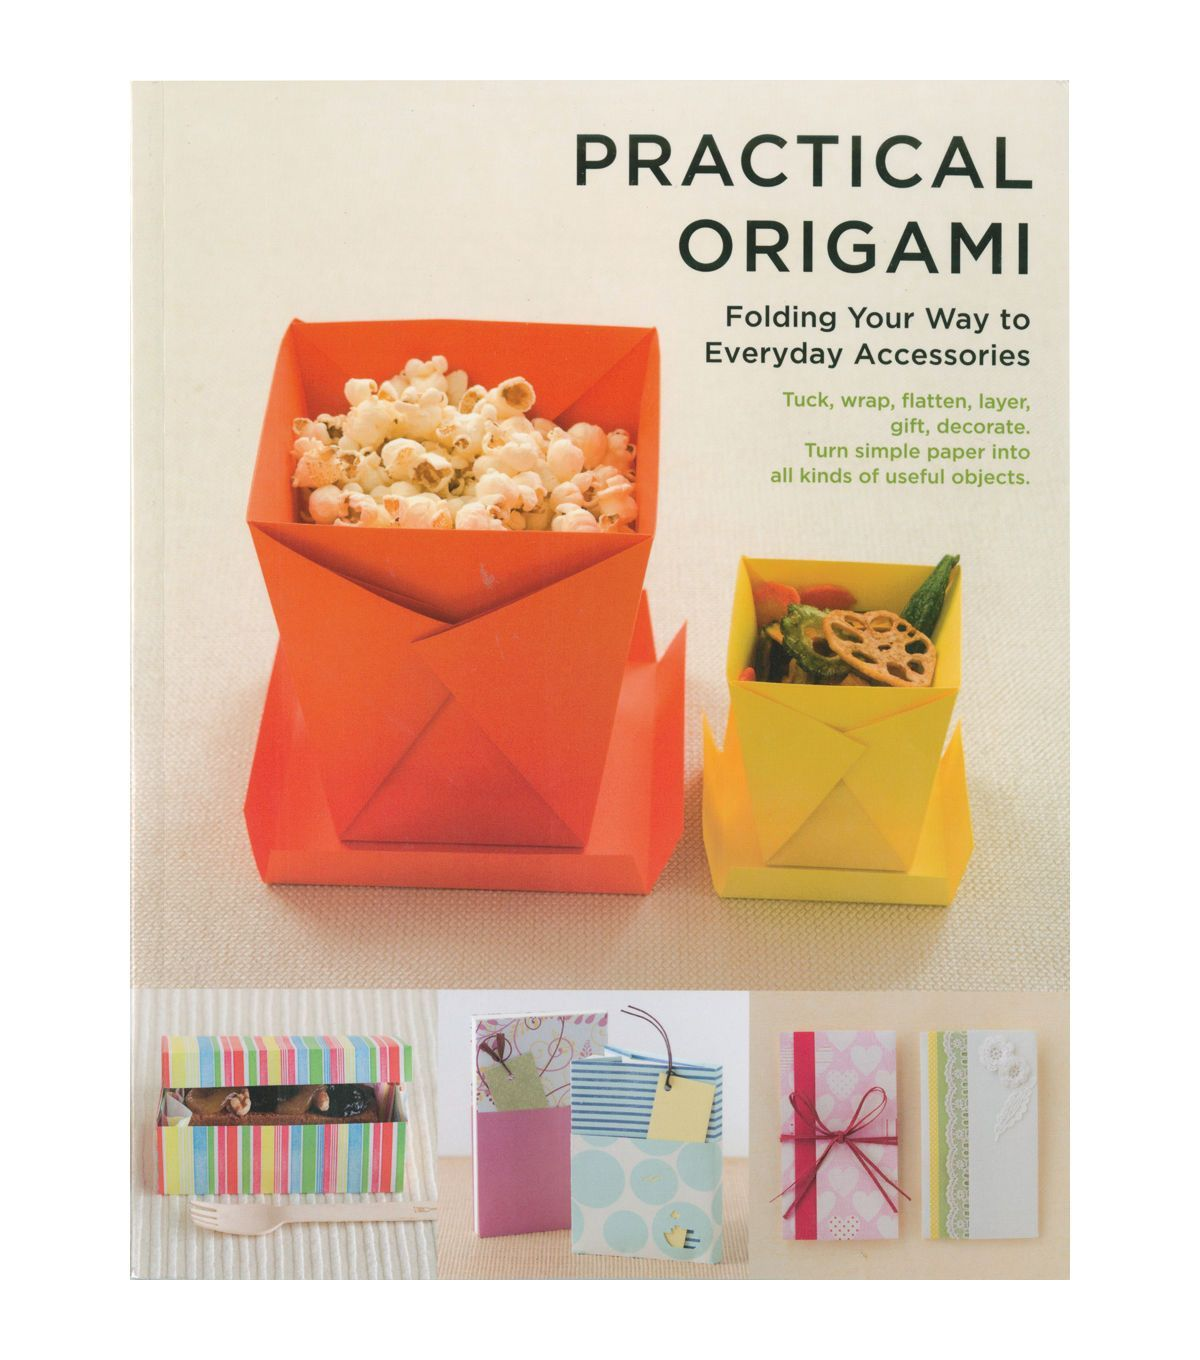 7 Easy Ways To Use Books In Your Décor: Random House Books-Practical Origami